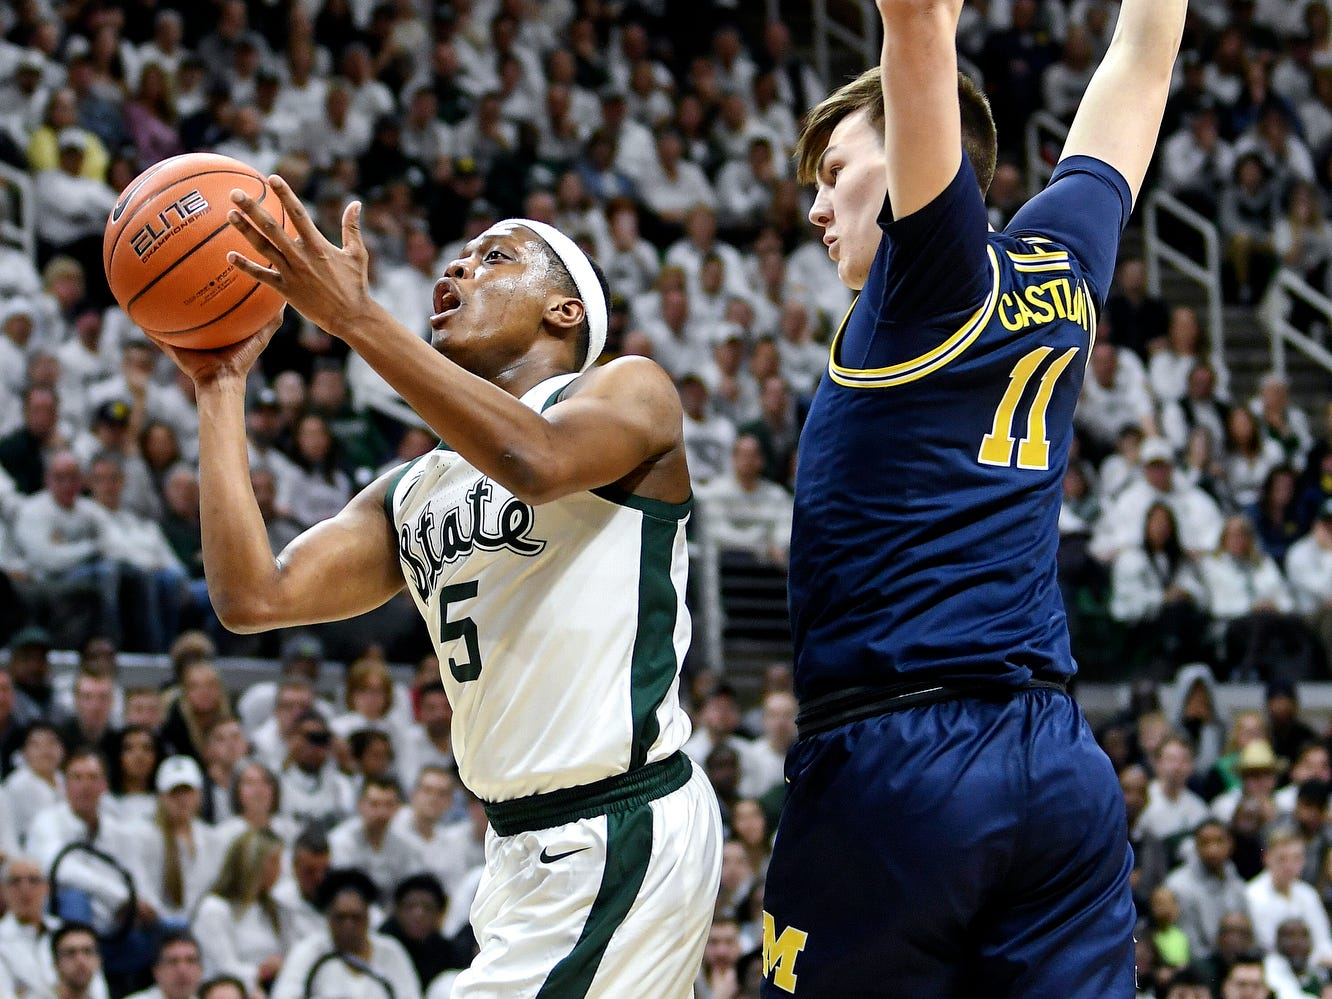 Michigan State's Cassius Winston, left, is fouled while shooting by Michigan's Colin Castleton during the first half on Saturday, March 9, 2019, at the Breslin Center in East Lansing.